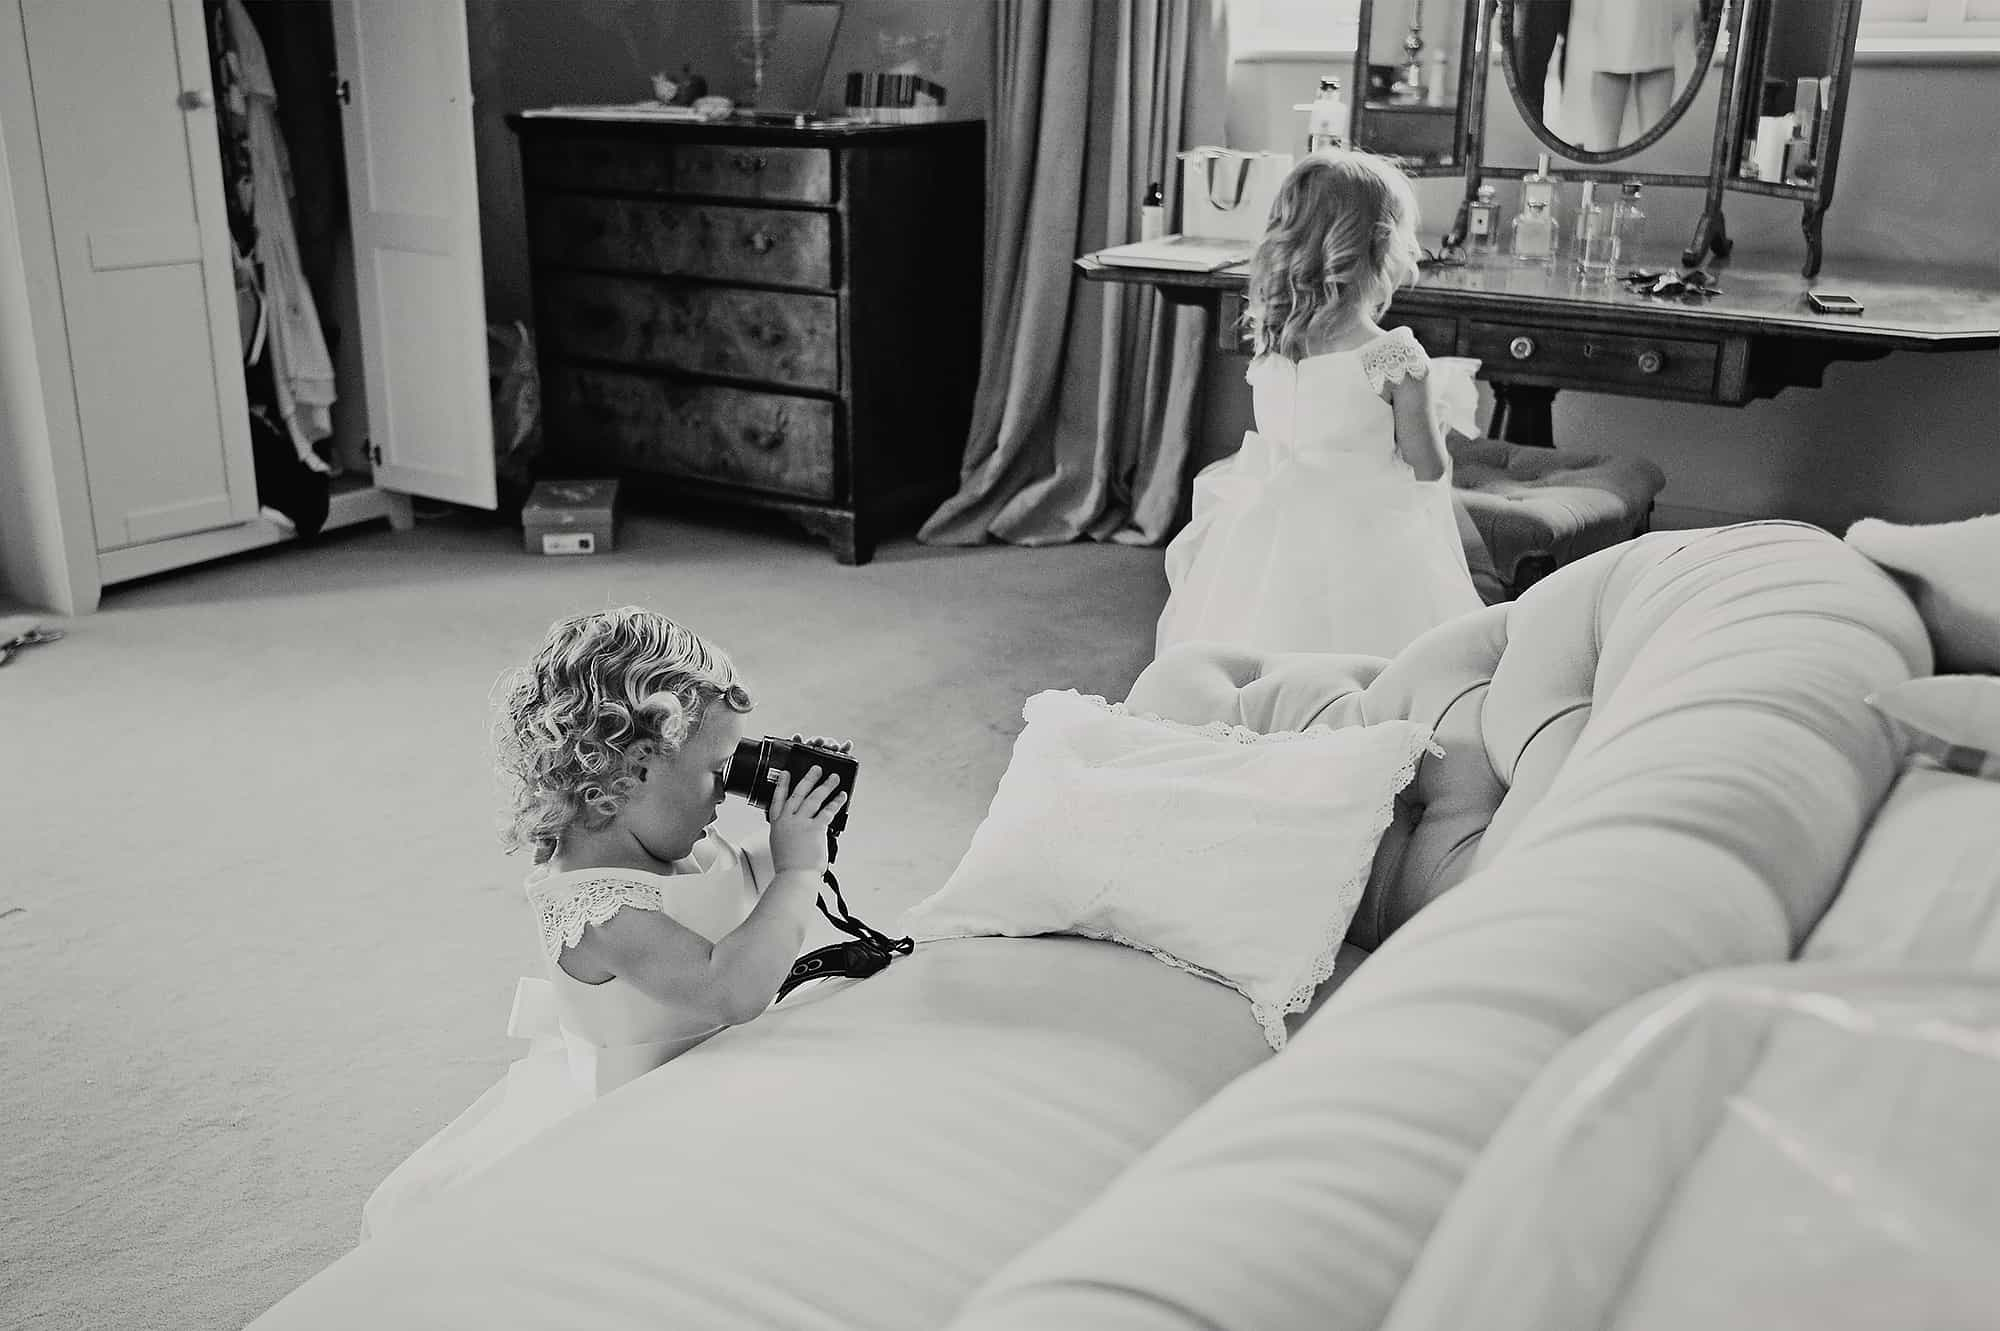 Flowergirl trying to take wedding photos with at camera at Dorset wedding at Axnoller House